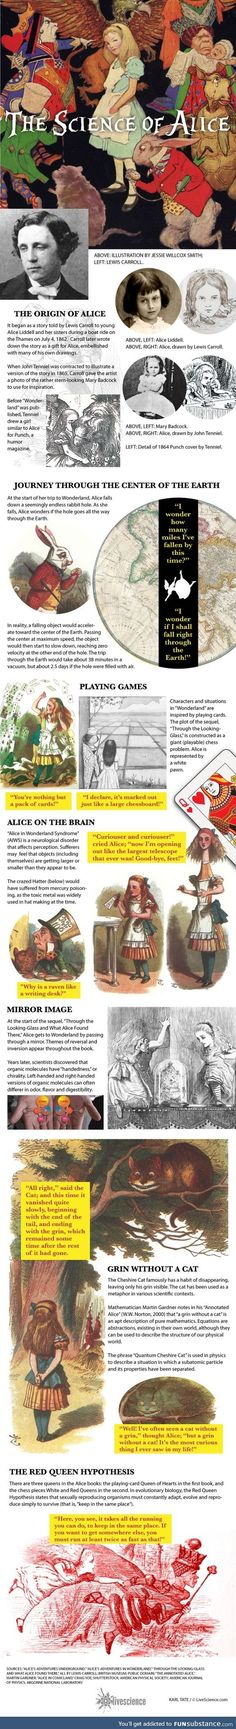 Ideas quotes alice in wonderland lewis carroll movies Alice In Wonderland Syndrome, Alice In Wonderland Party, Adventures In Wonderland, Alice In Wonderland Background, Bad Trip, Go Ask Alice, Dear Alice, Chesire Cat, Through The Looking Glass